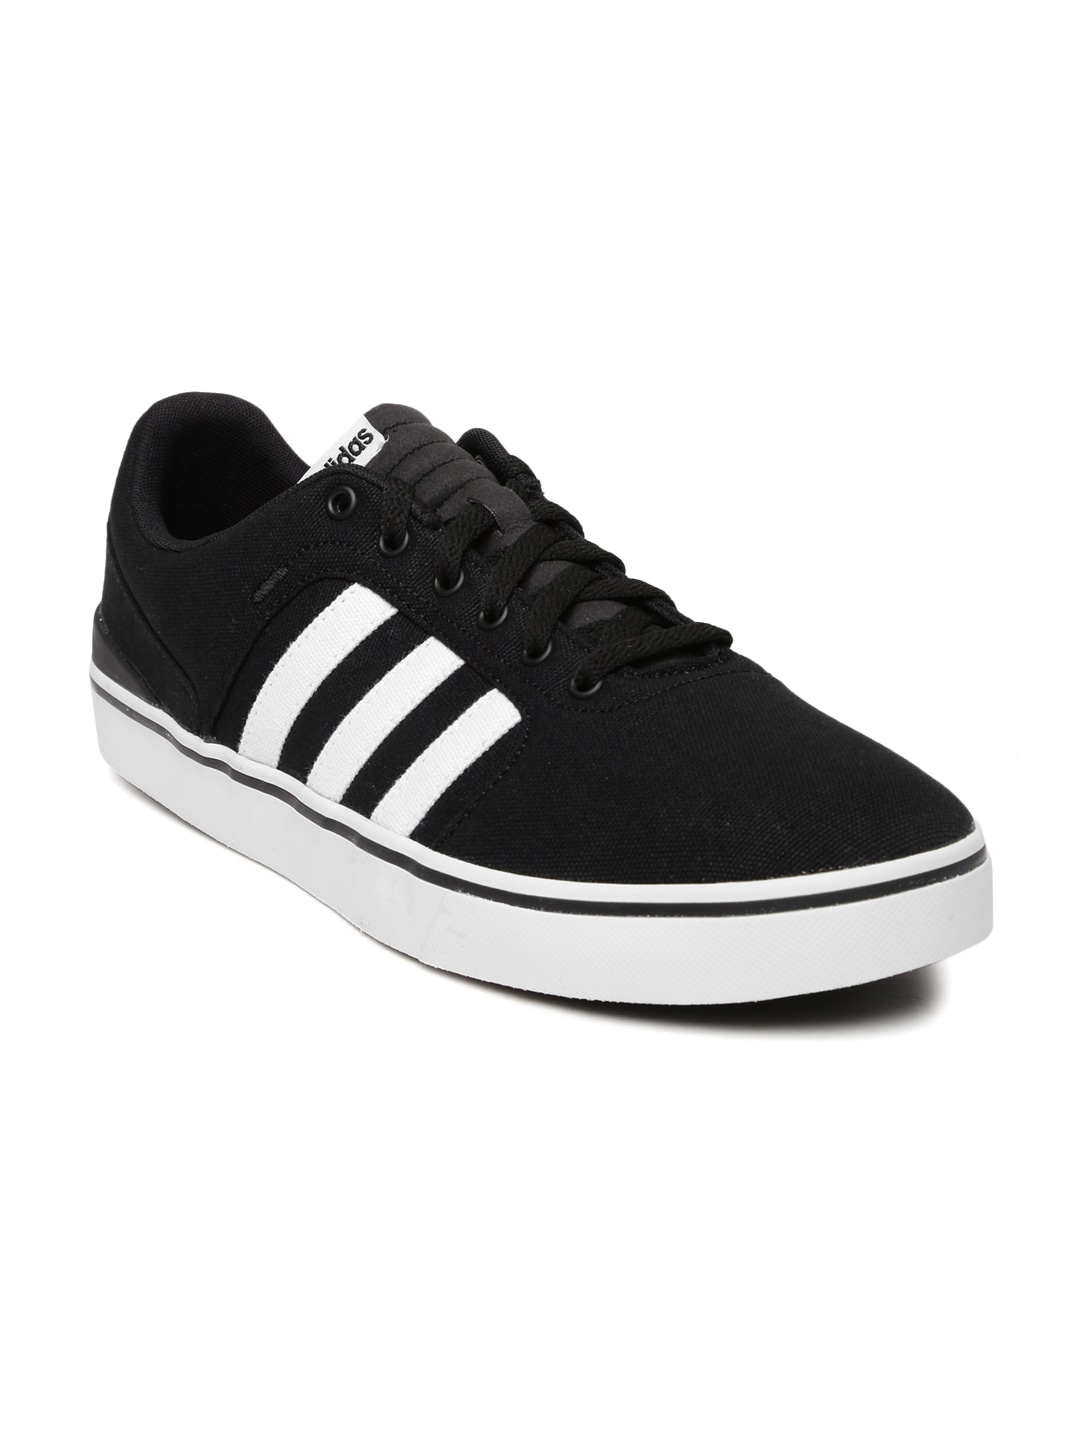 adidas neo shoes black and blue stockholmsnyheter nu